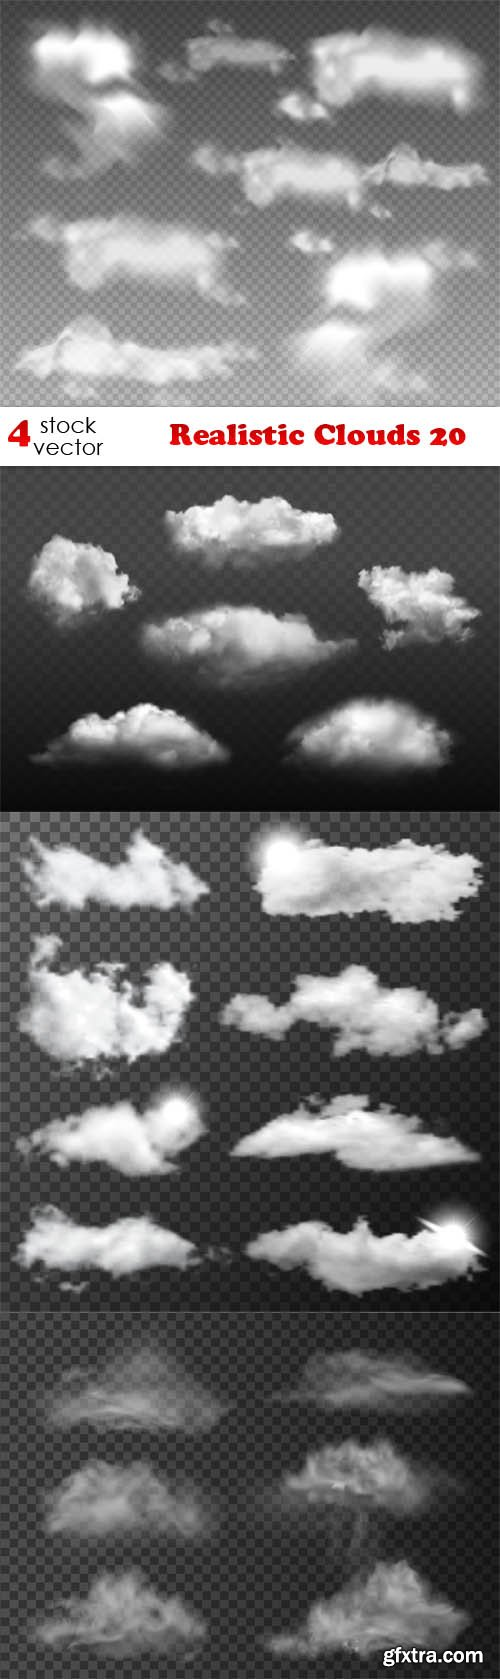 Vectors - Realistic Clouds 20